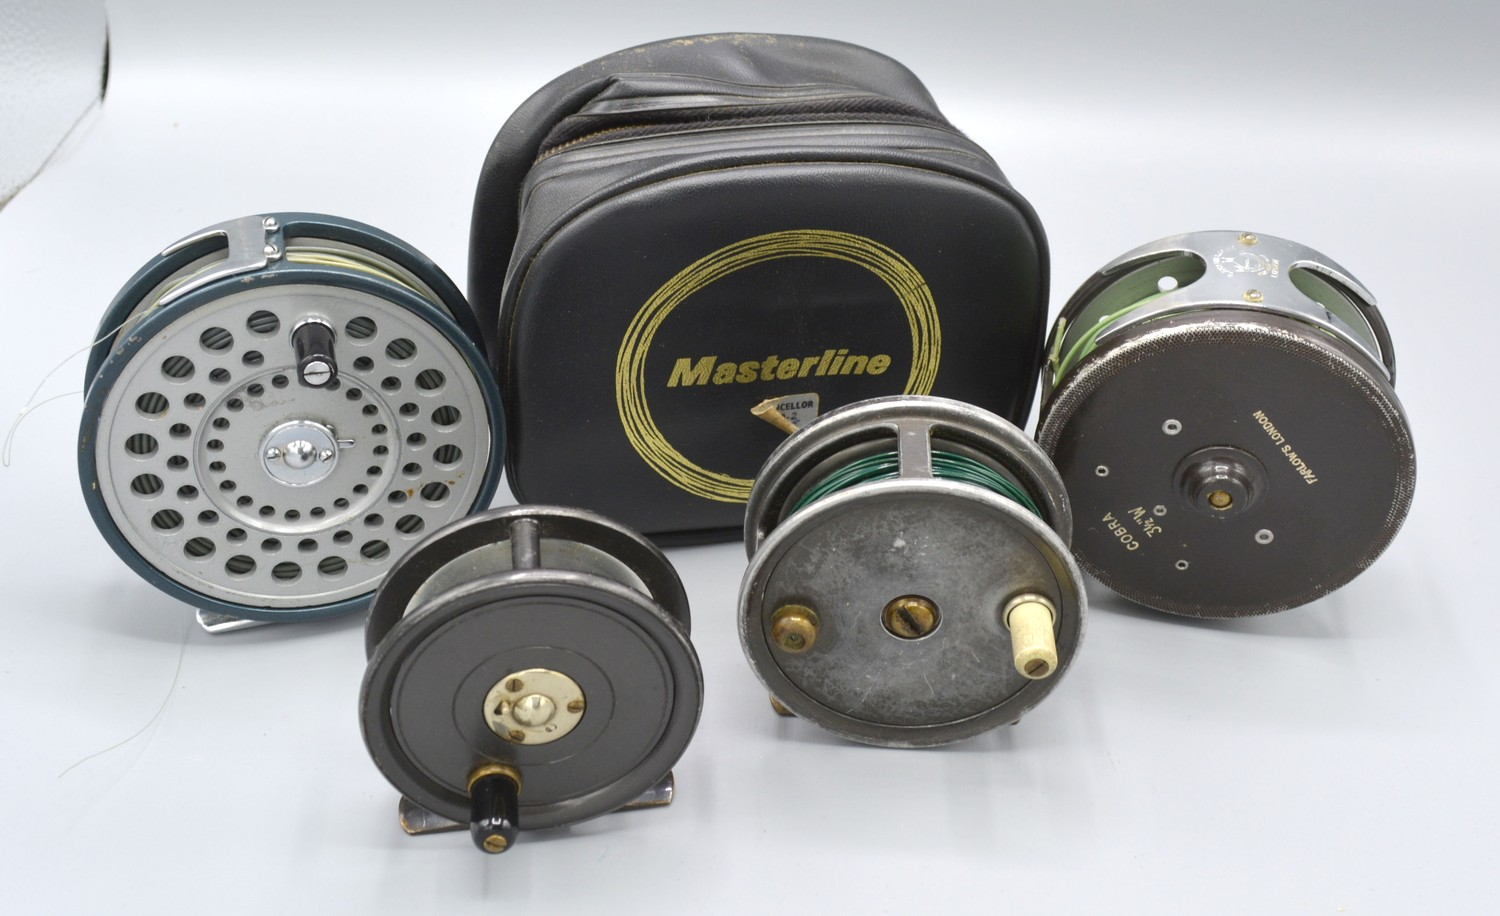 The Cobra fishing reel by Farlows London, 9cms diameter together with another reel by Masterline,